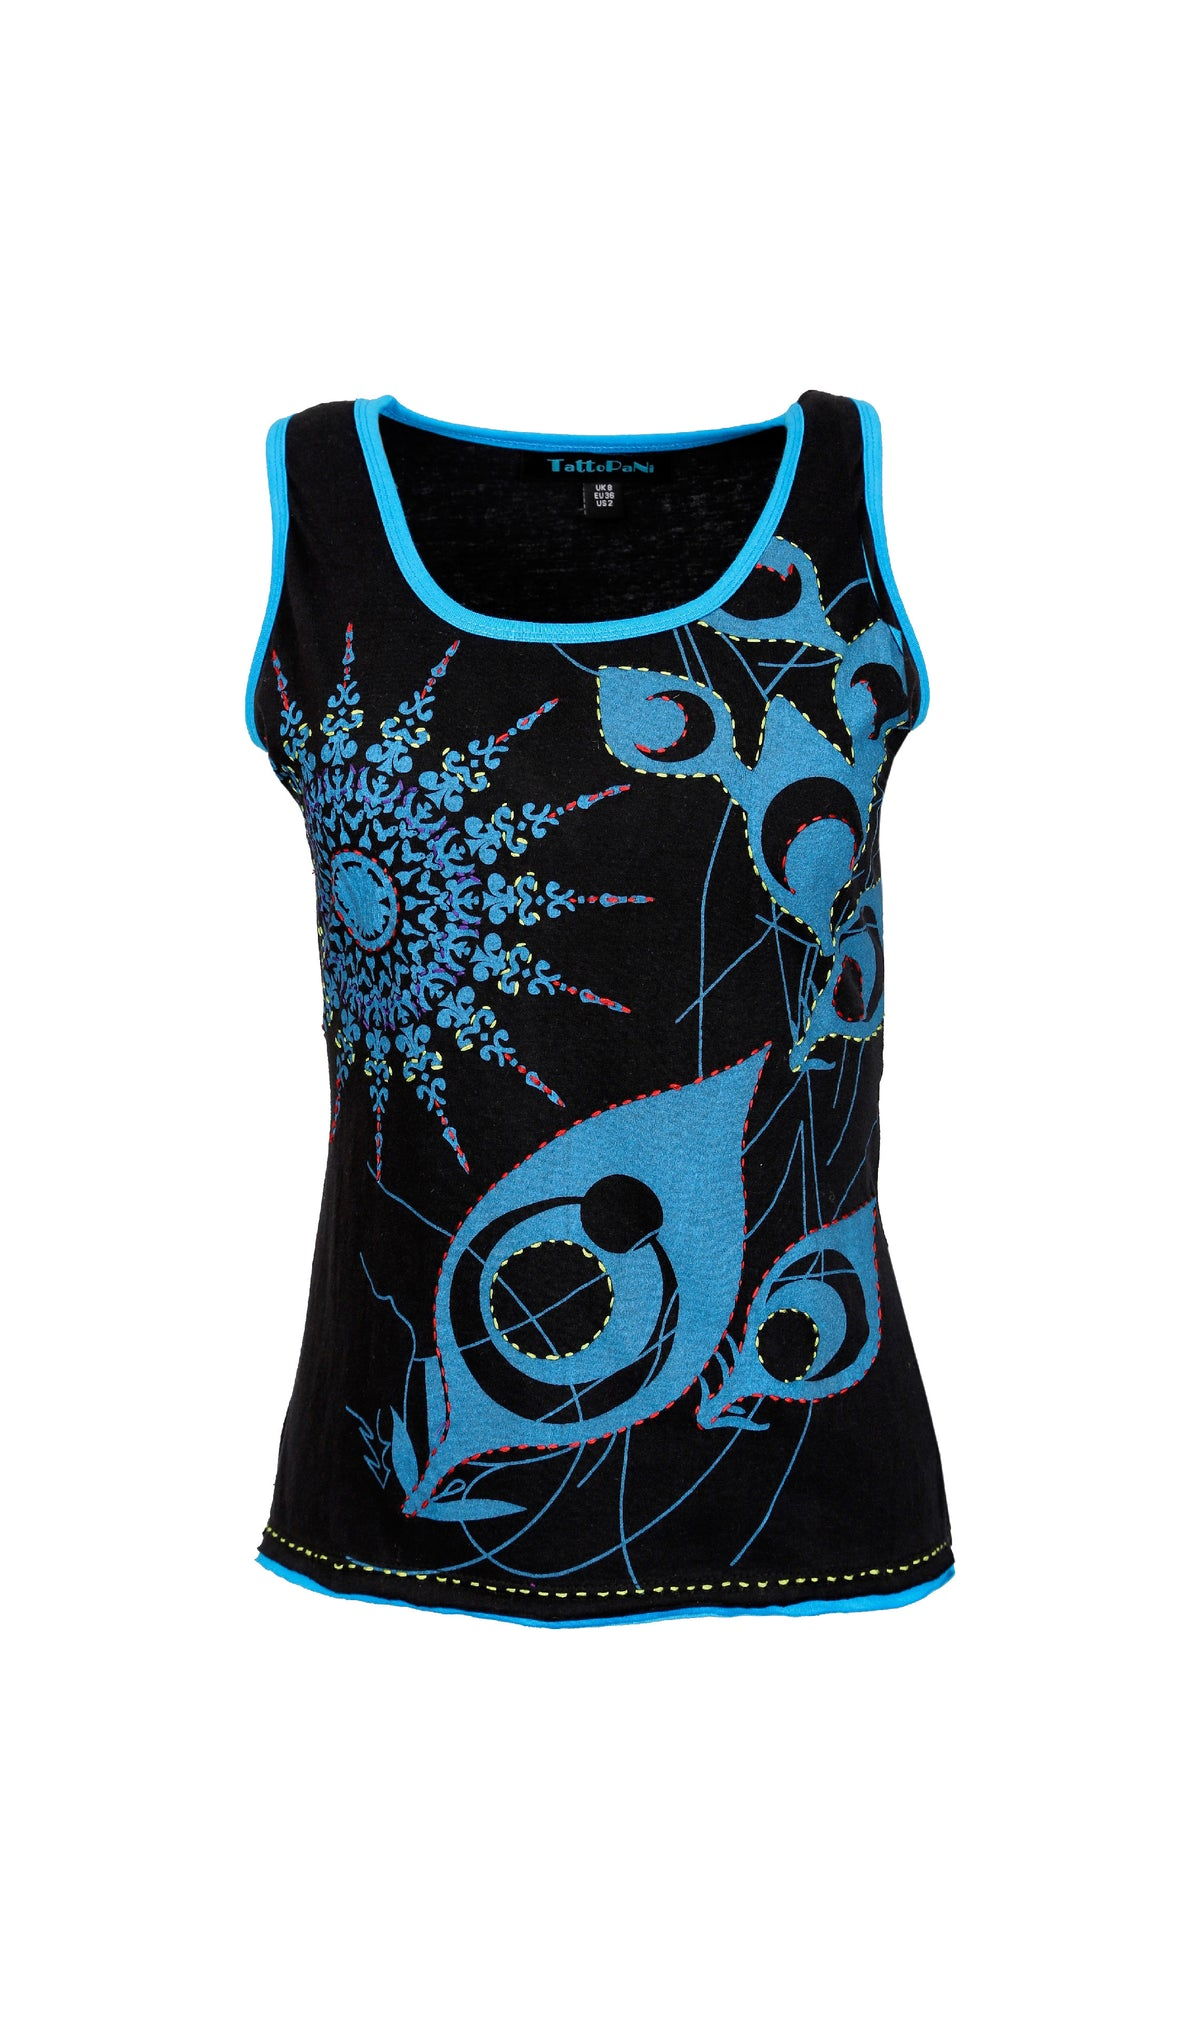 Ladies sleeveless Tank Tops with peacock feather inspired print embroidery - Craze Trade Limited